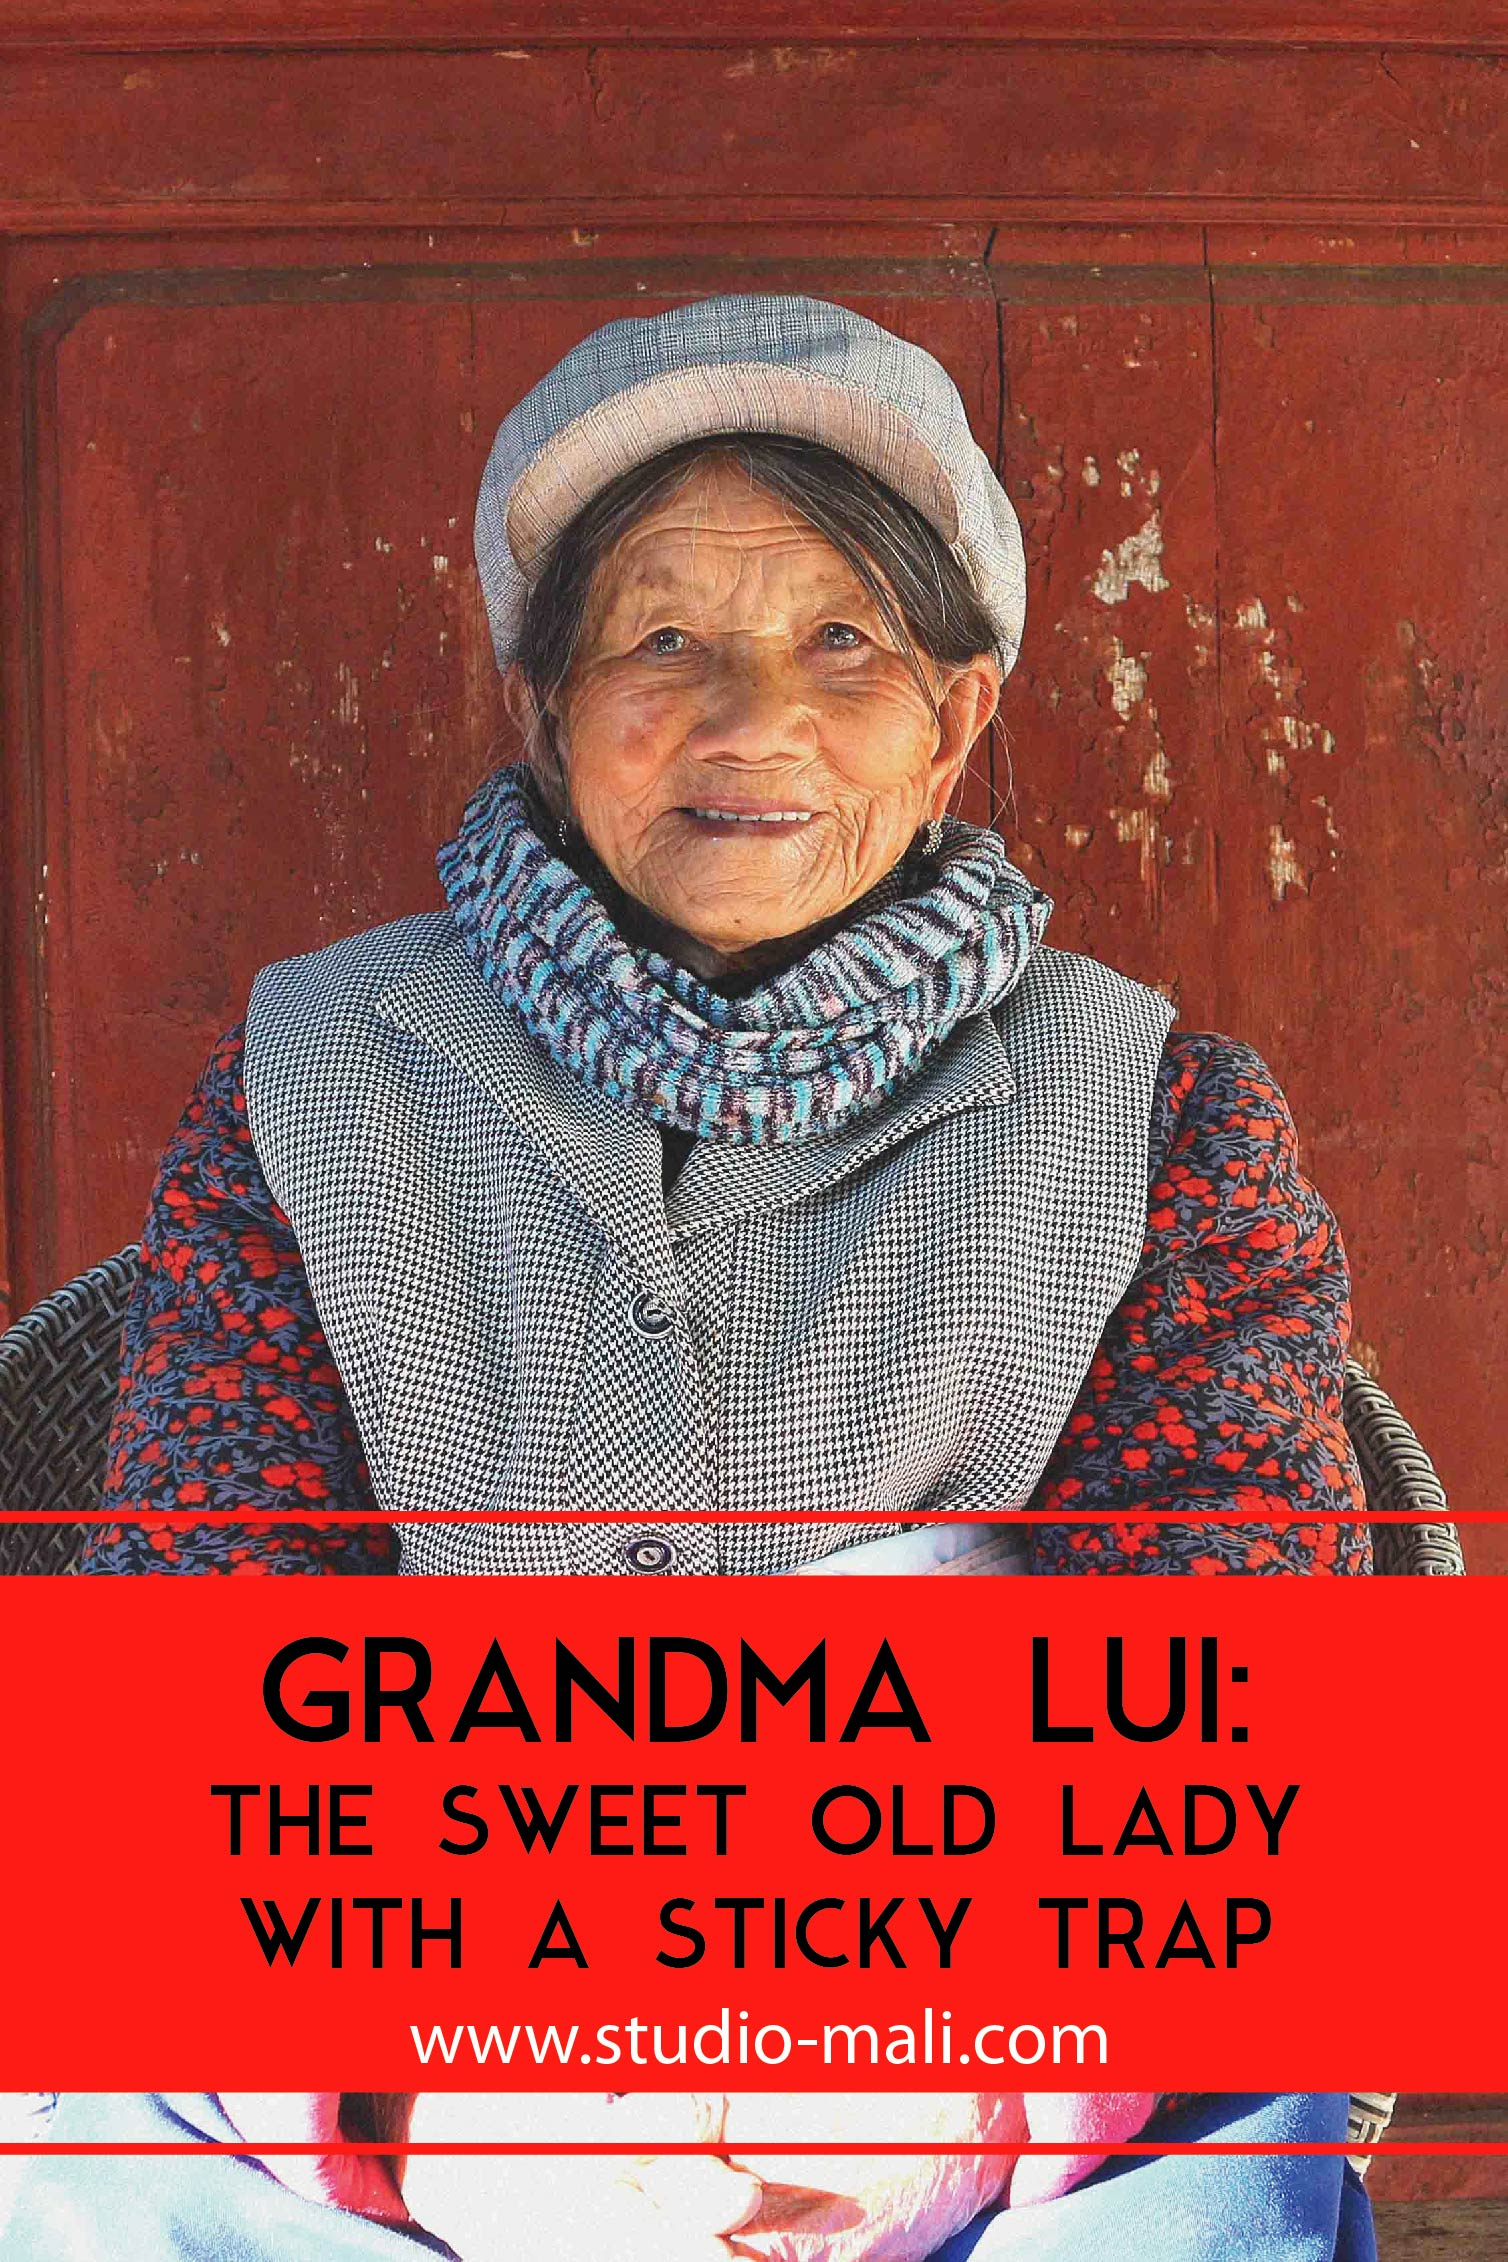 Grandma Lui - The Sweet Old Lady With A Sticky Trap